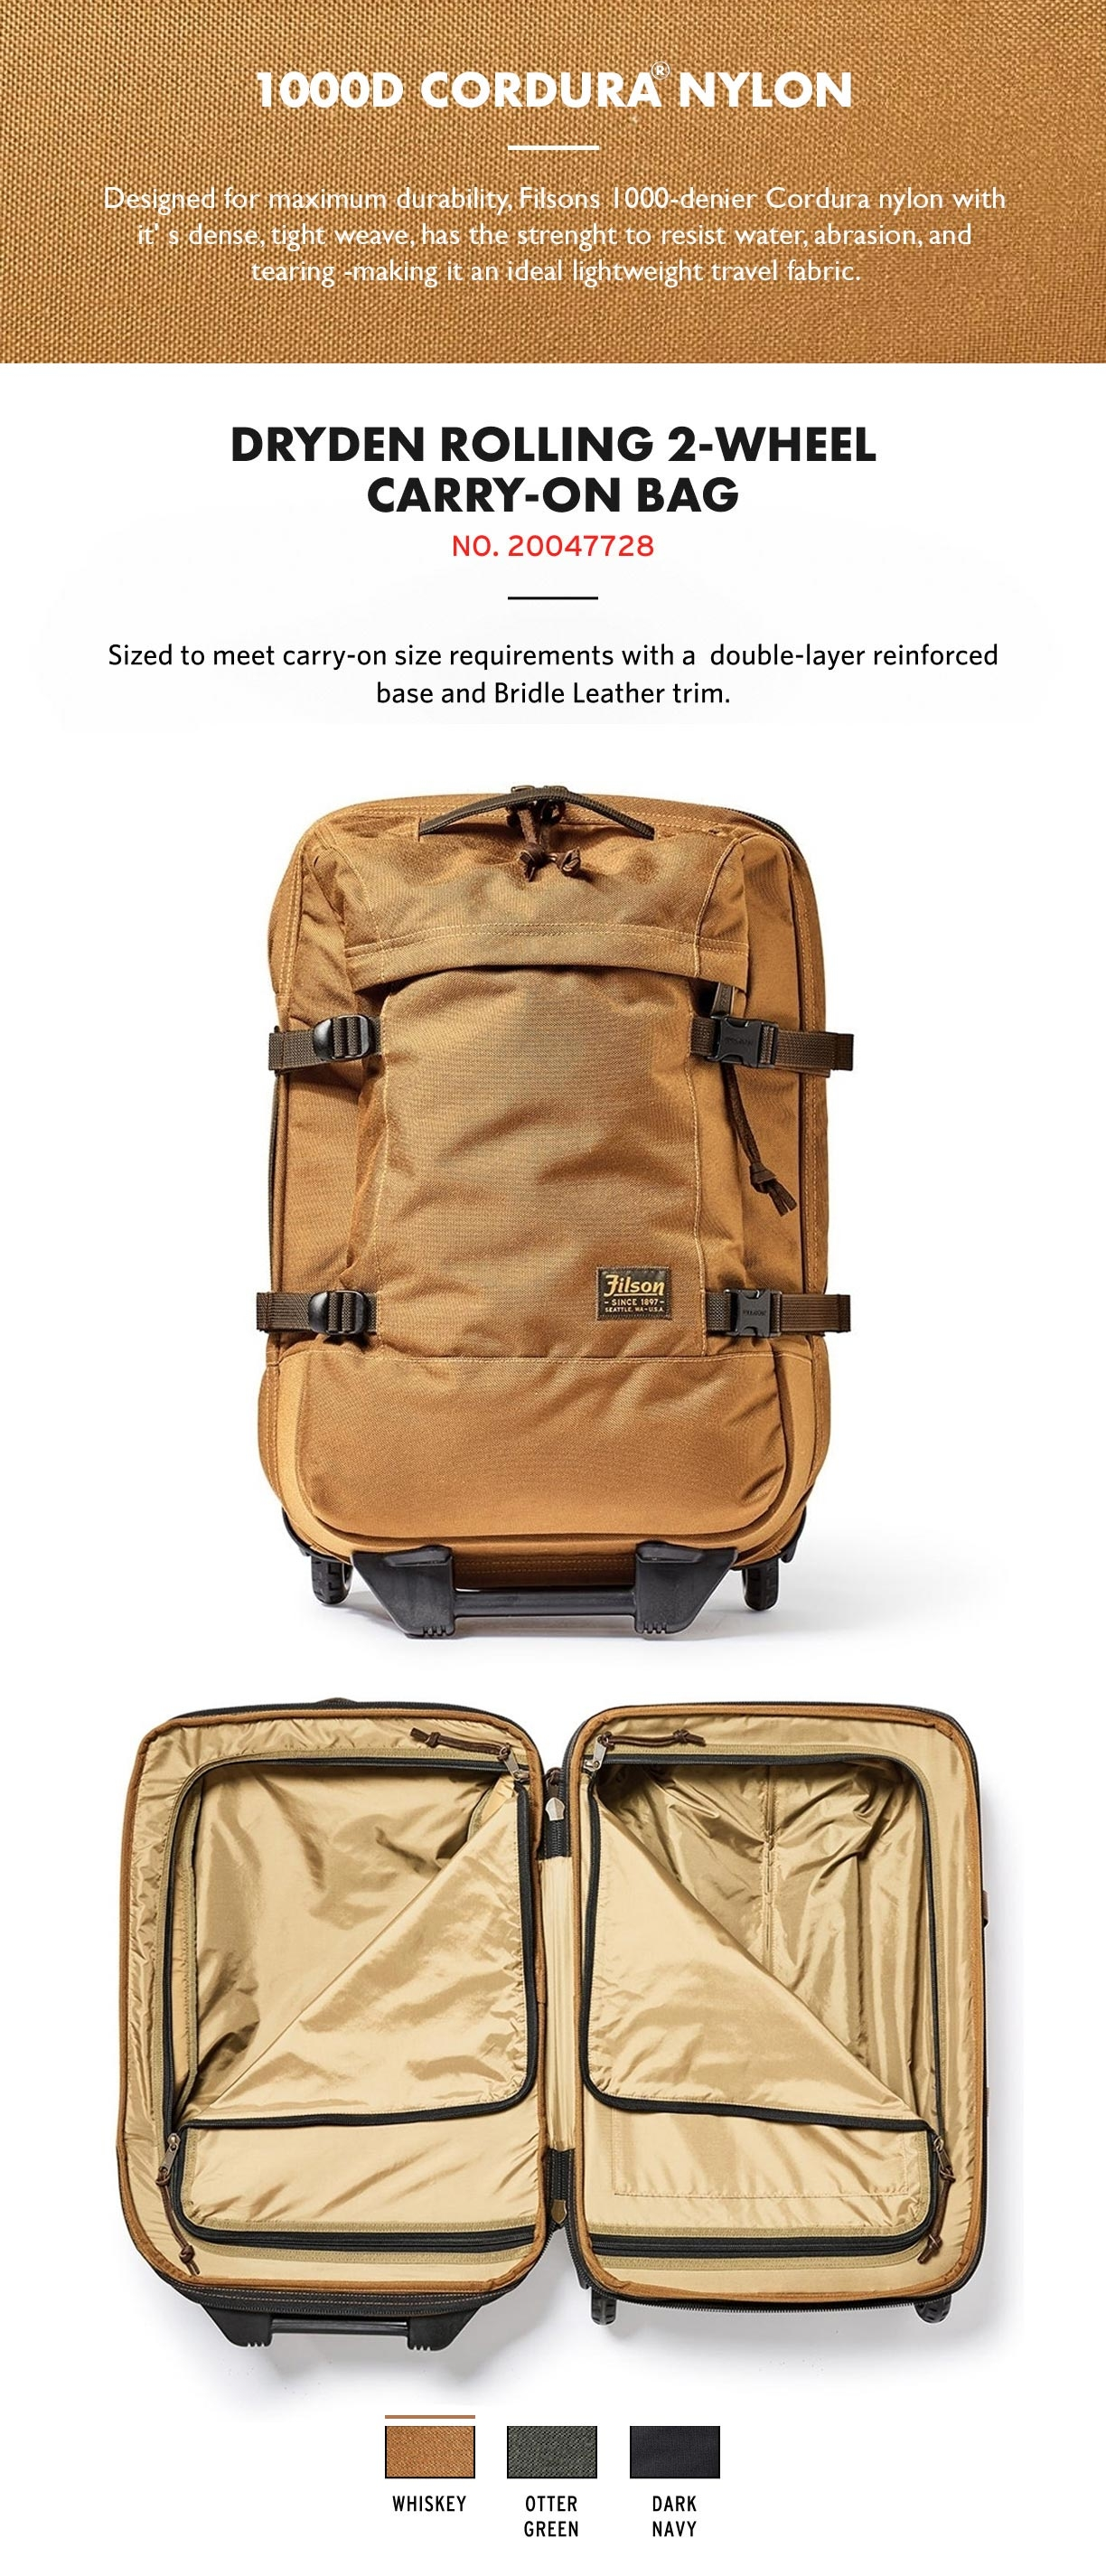 Filson Dryden 2-Wheel Rolling Carry-On Bag Dark Navy Product-information